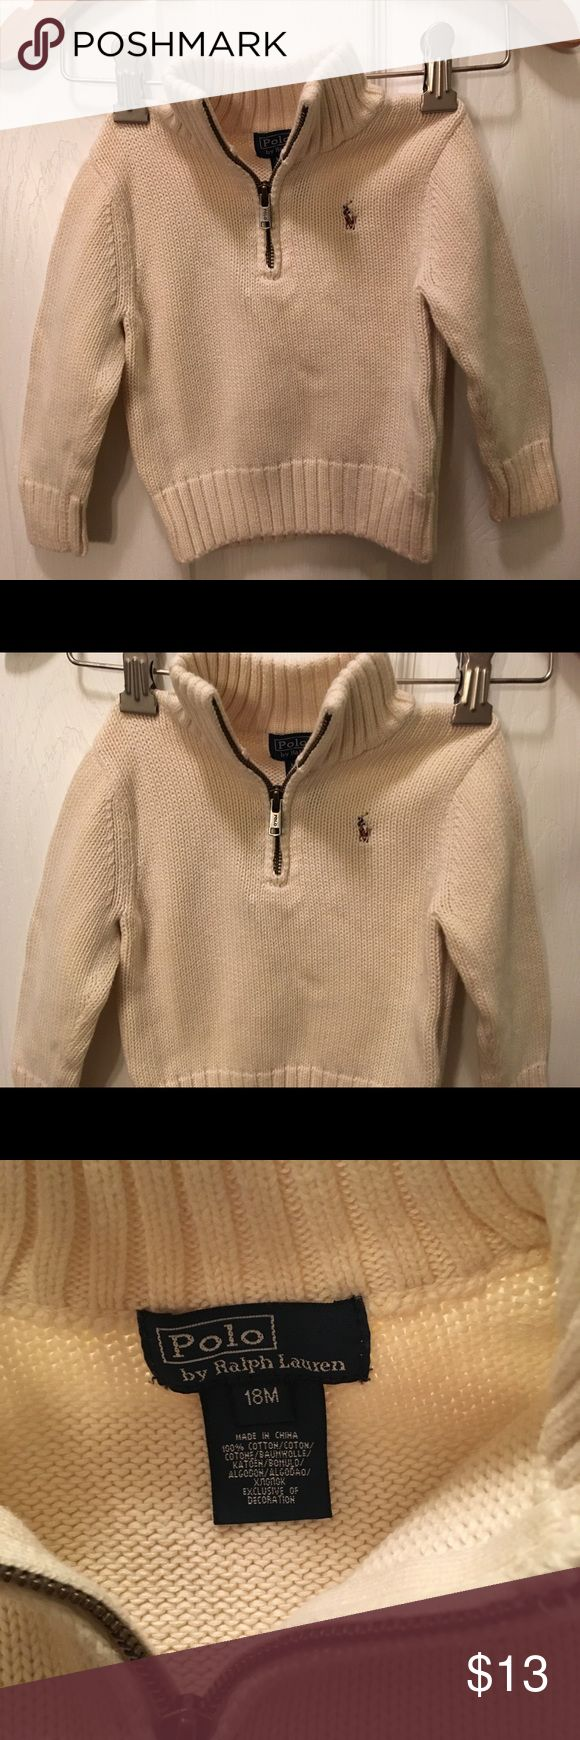 Polo Ralf Lauren toddler boys sweater sz18mo Polo Ralf Lauren toddler boys sweater size 18 months. Pullover half zip knit sweater with mock collar. Ivory in color. Logo on front. Polo by Ralph Lauren Shirts & Tops Sweaters